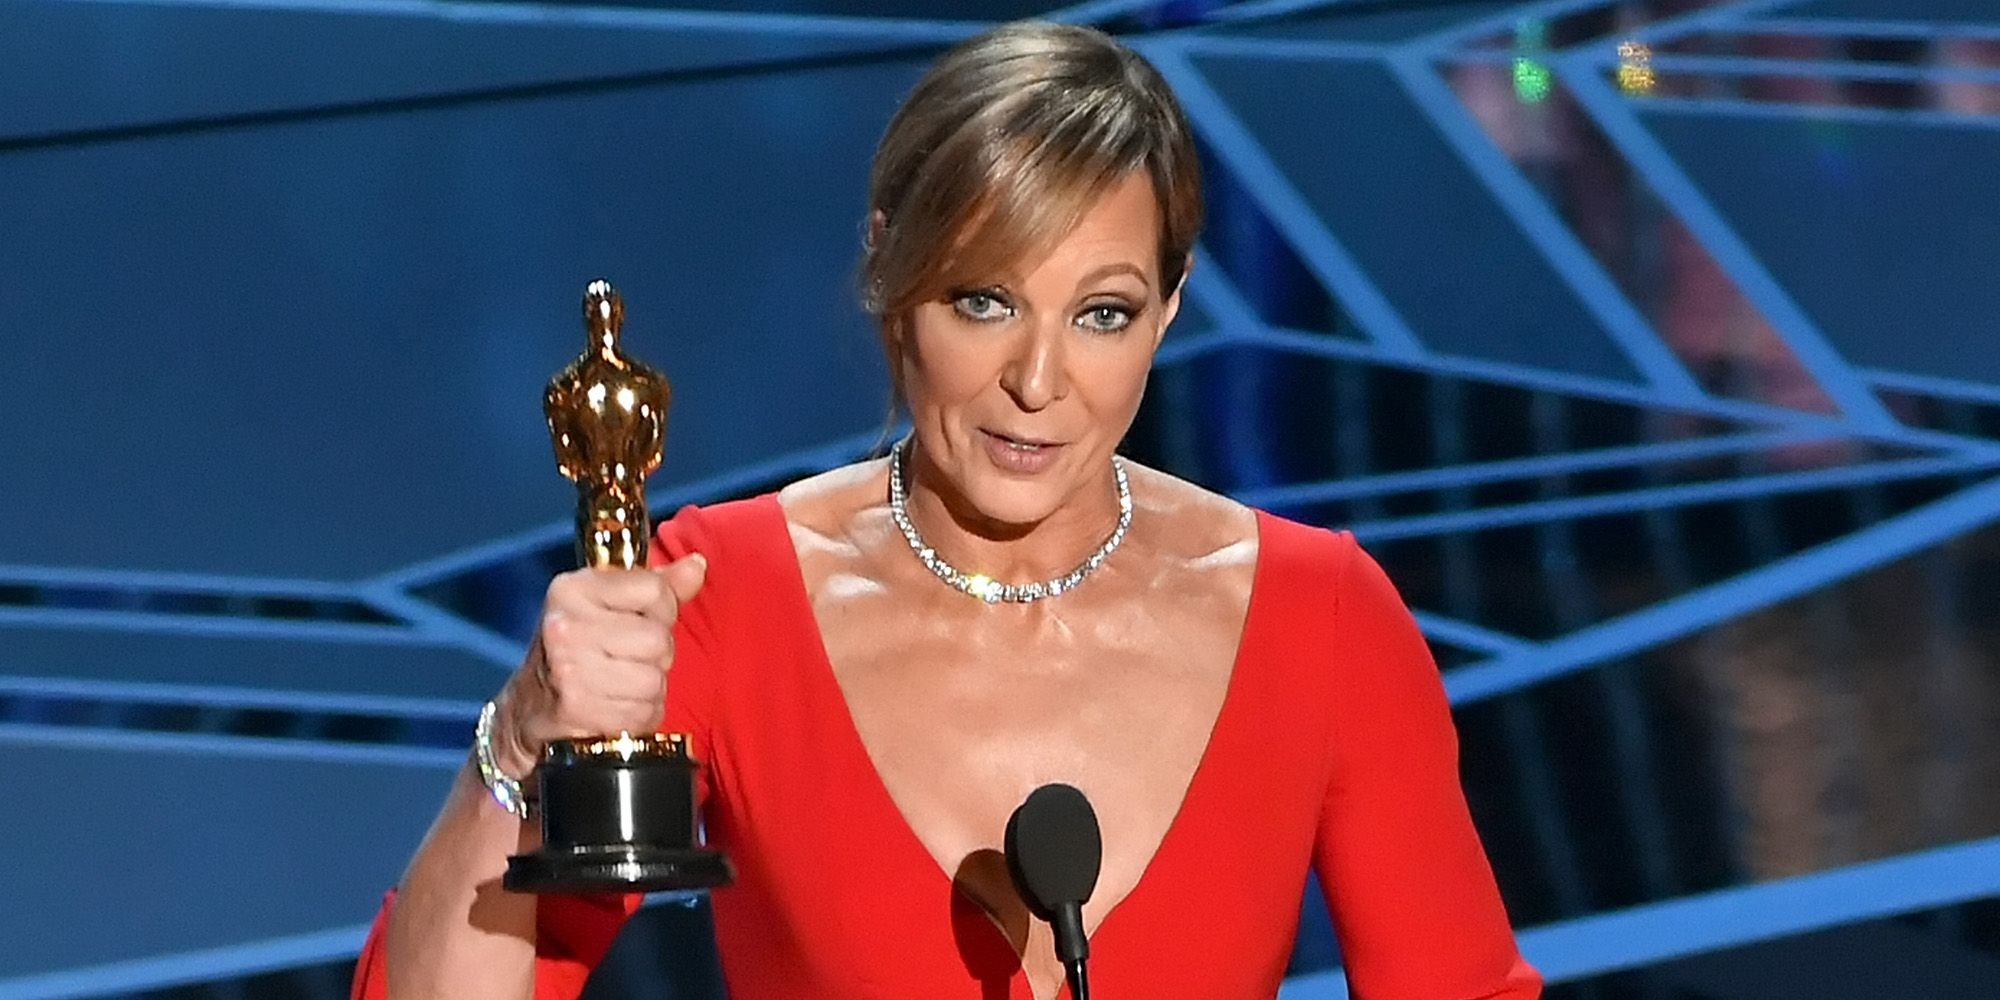 Allison Janney Nudography allison janney oscars speech 2018 - i tonya wins best